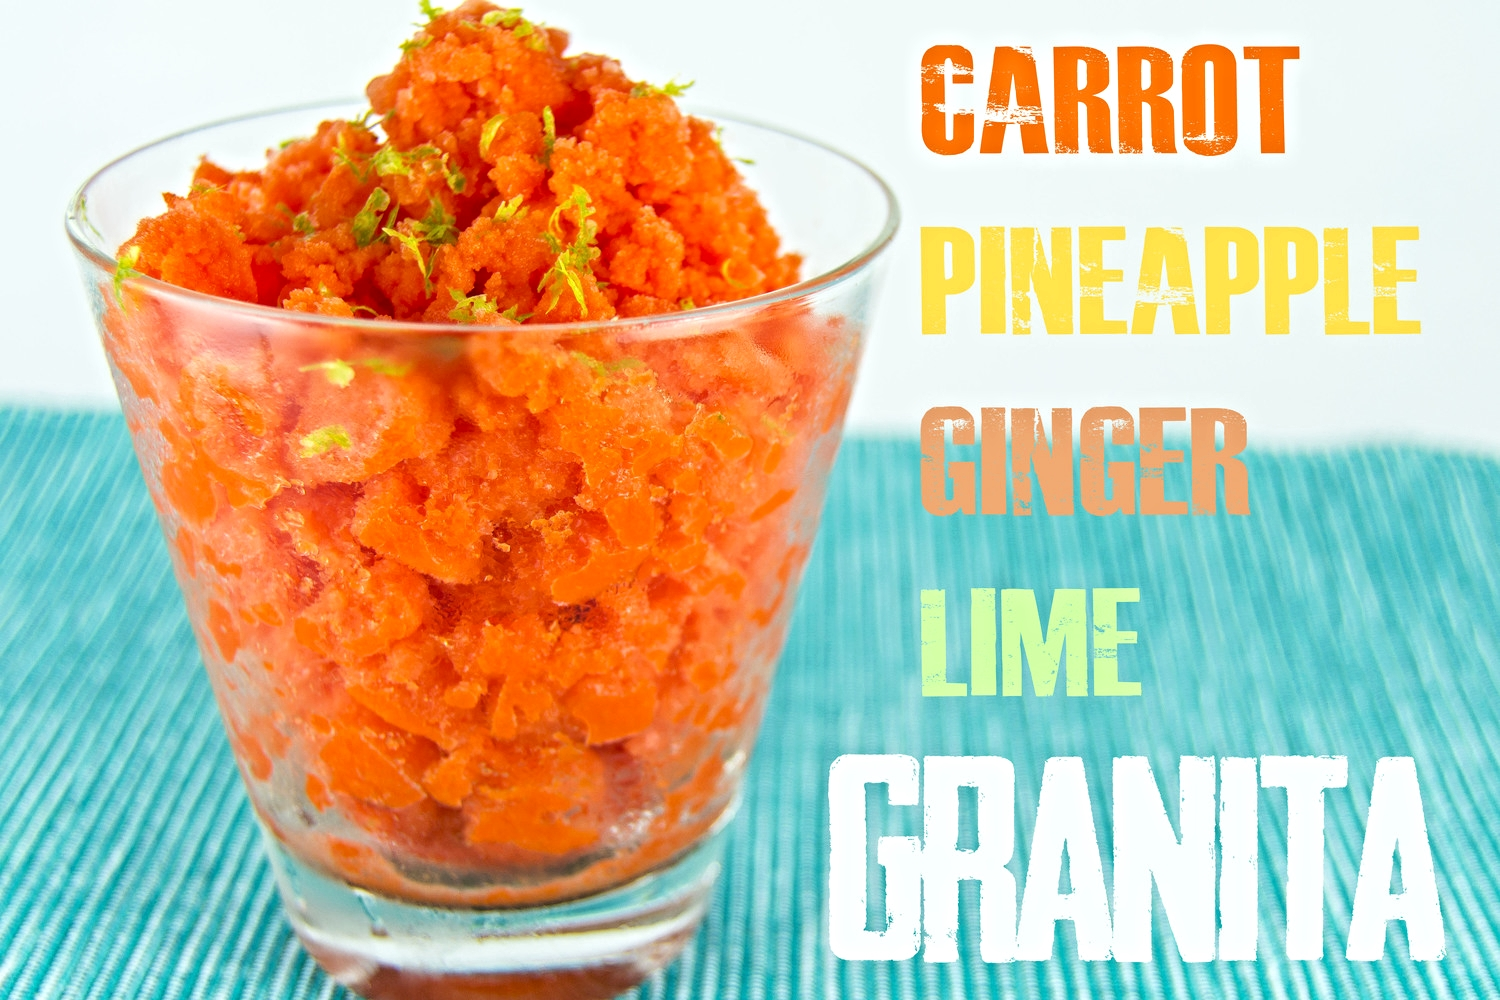 Carrot granita words